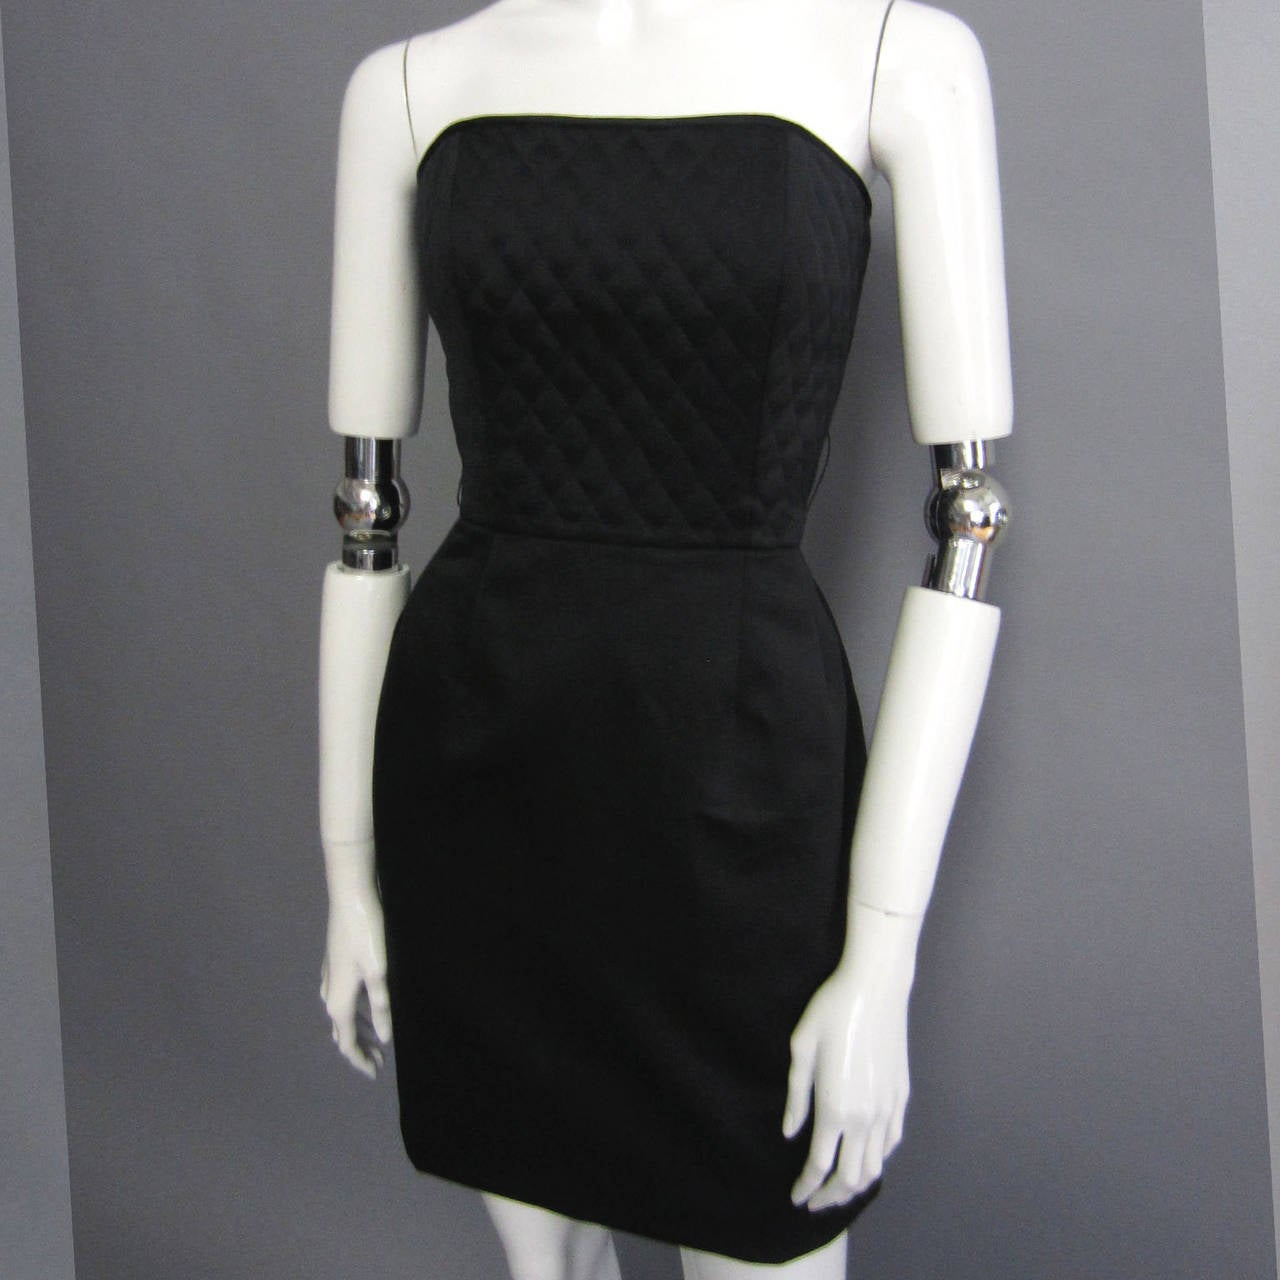 1980s VICTOR COSTA Quilted Little Black Dress In Excellent Condition For Sale In New York, NY